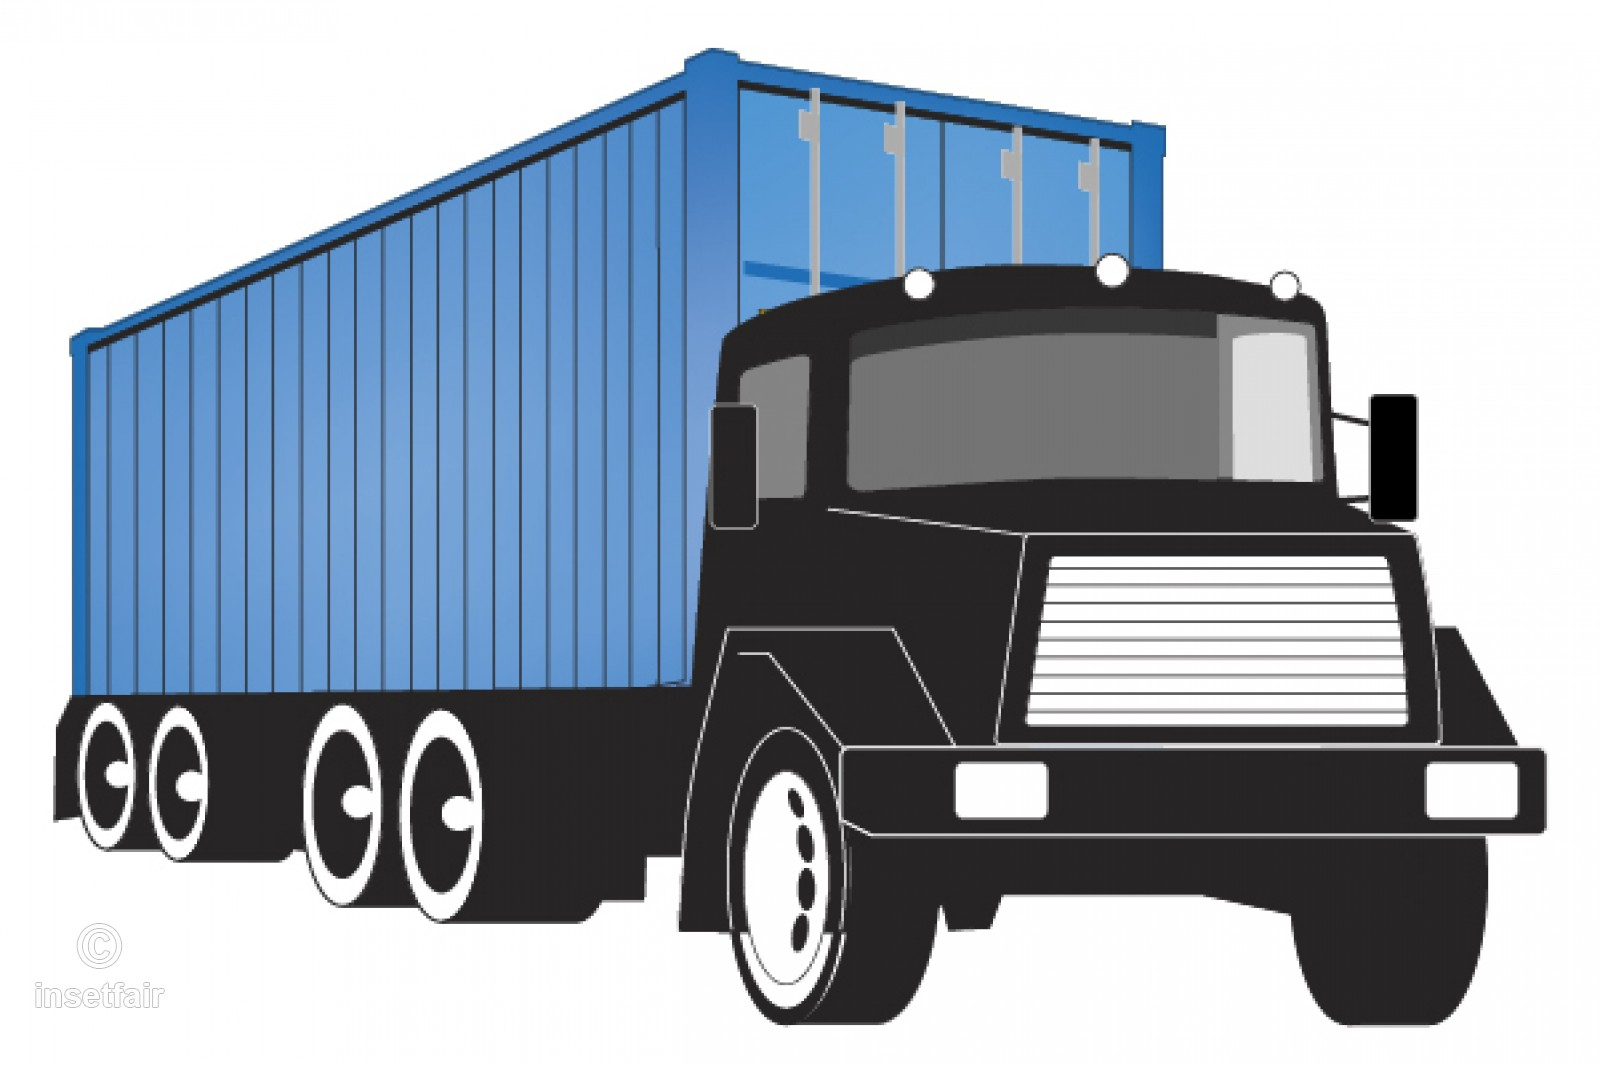 Large container truck vector illustration PNG file.